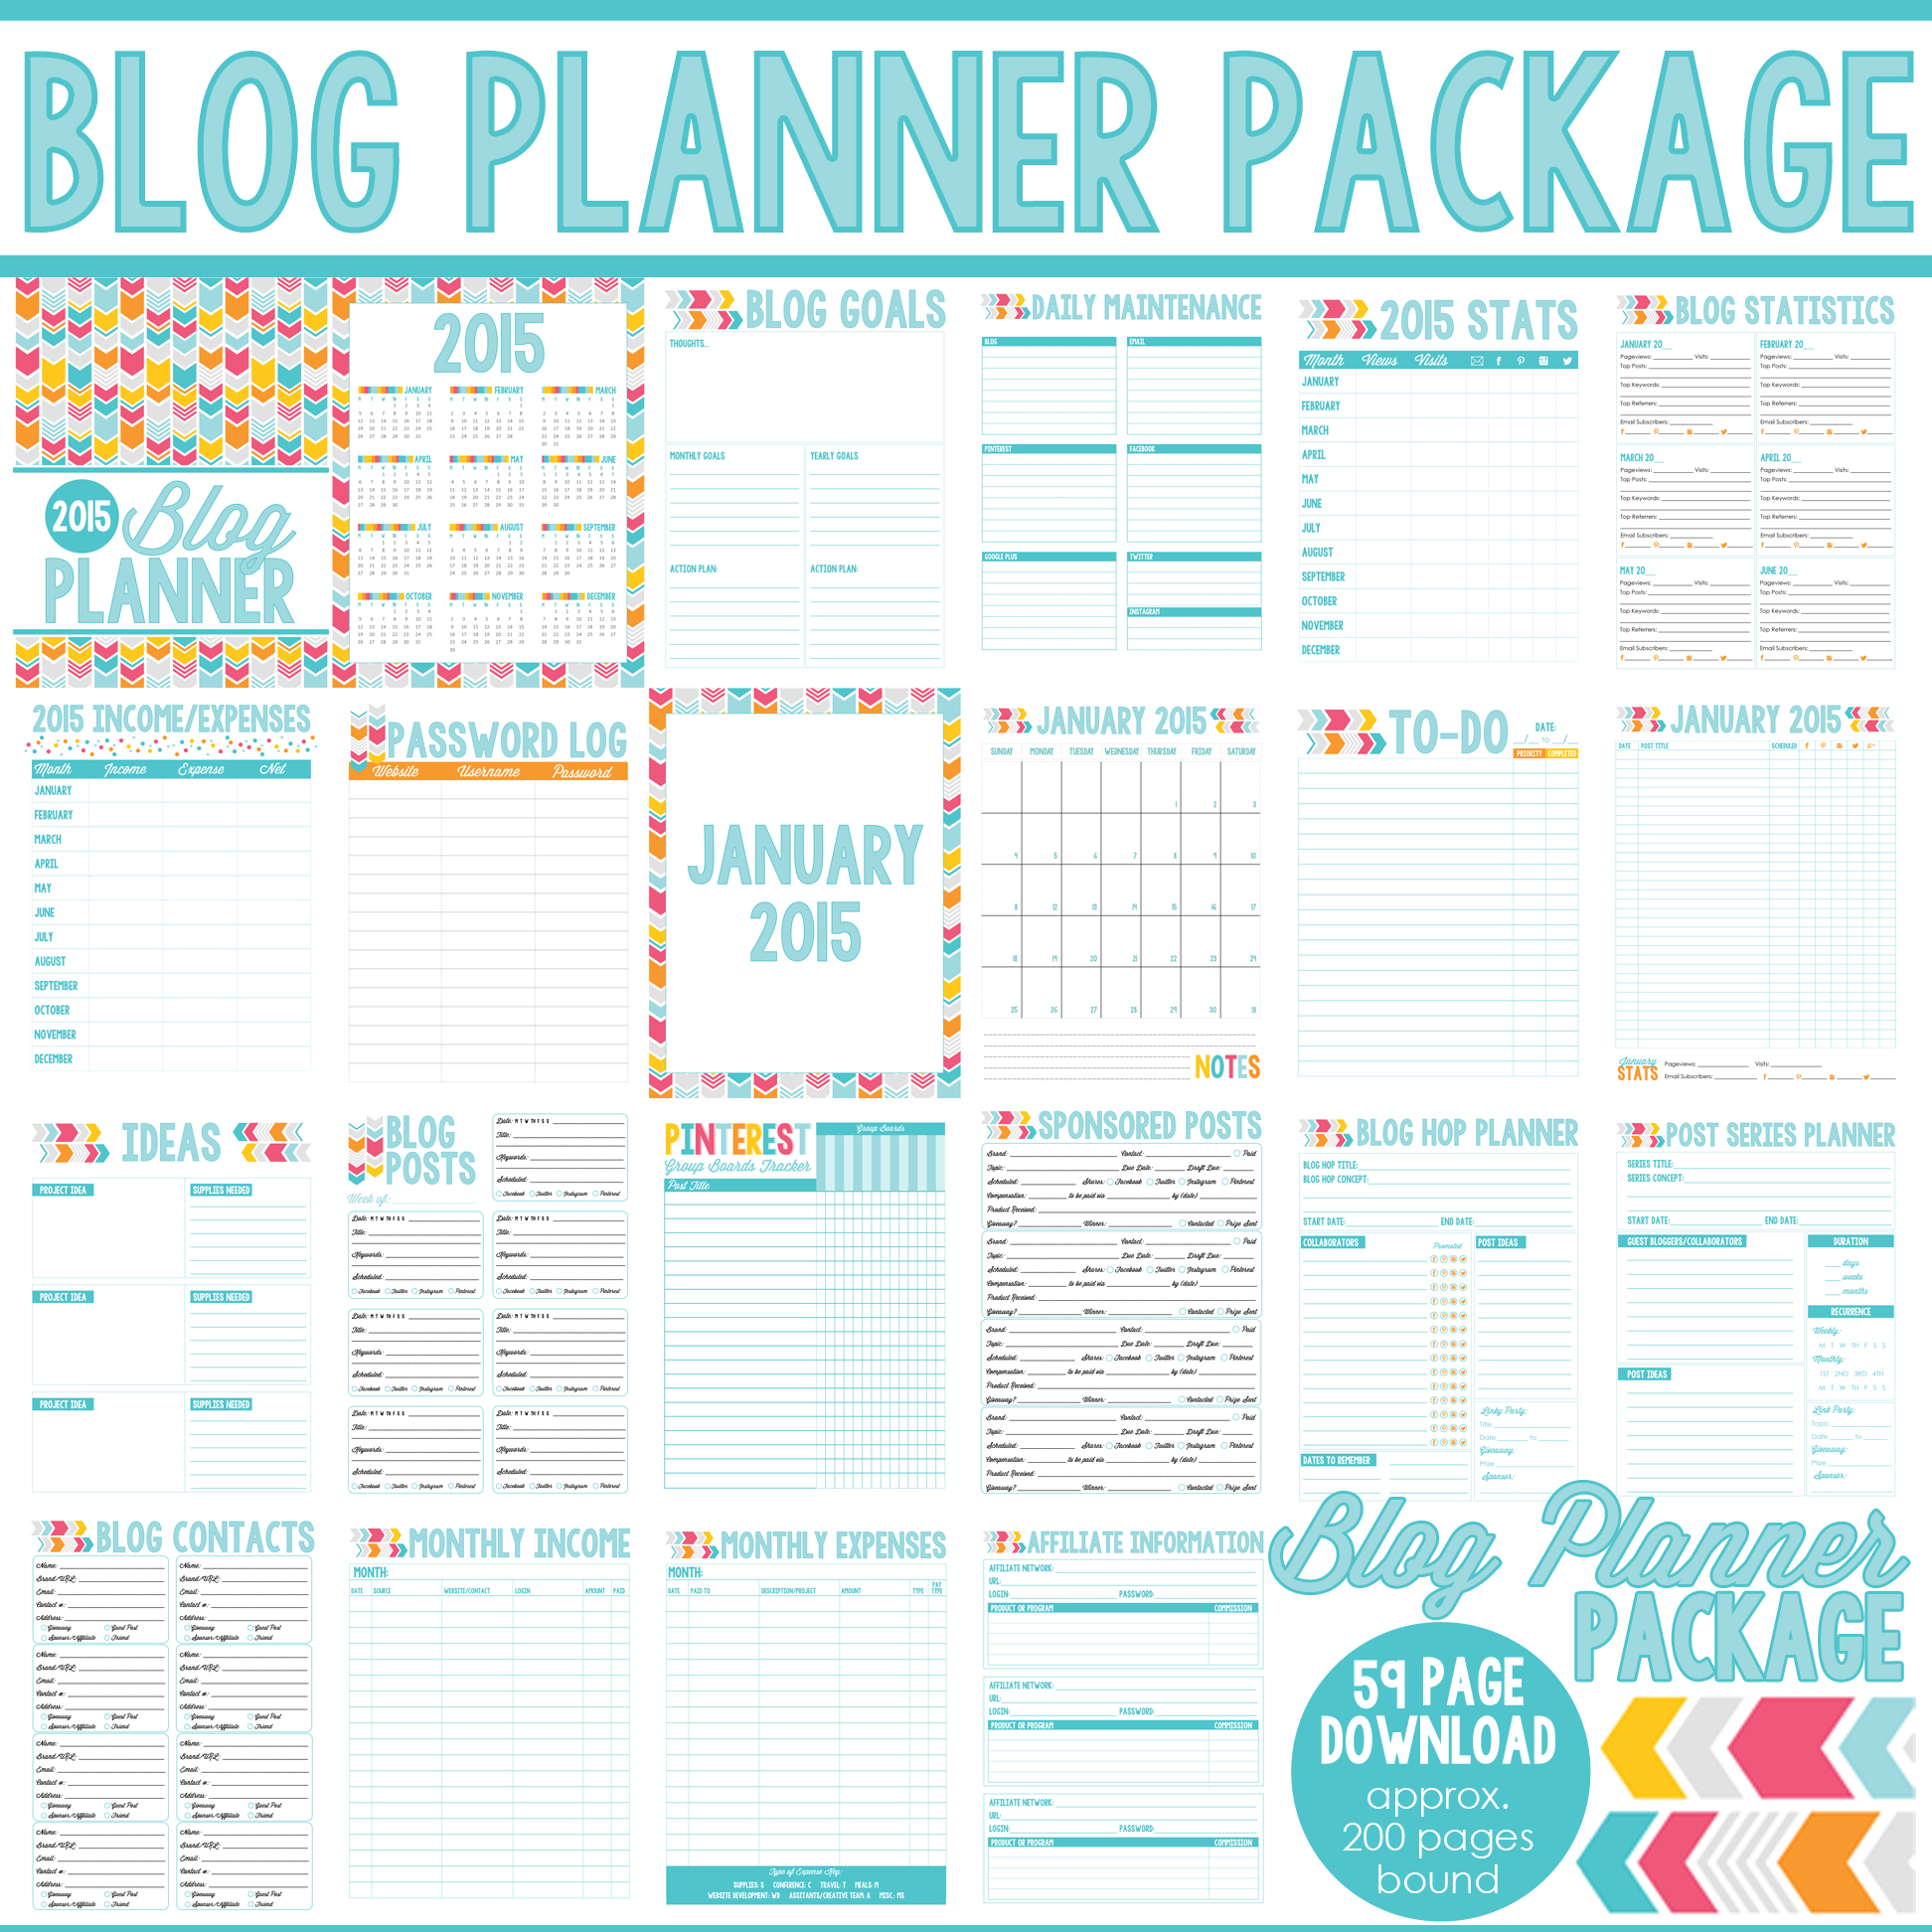 5 Images of 2015 Printable Blog Planner